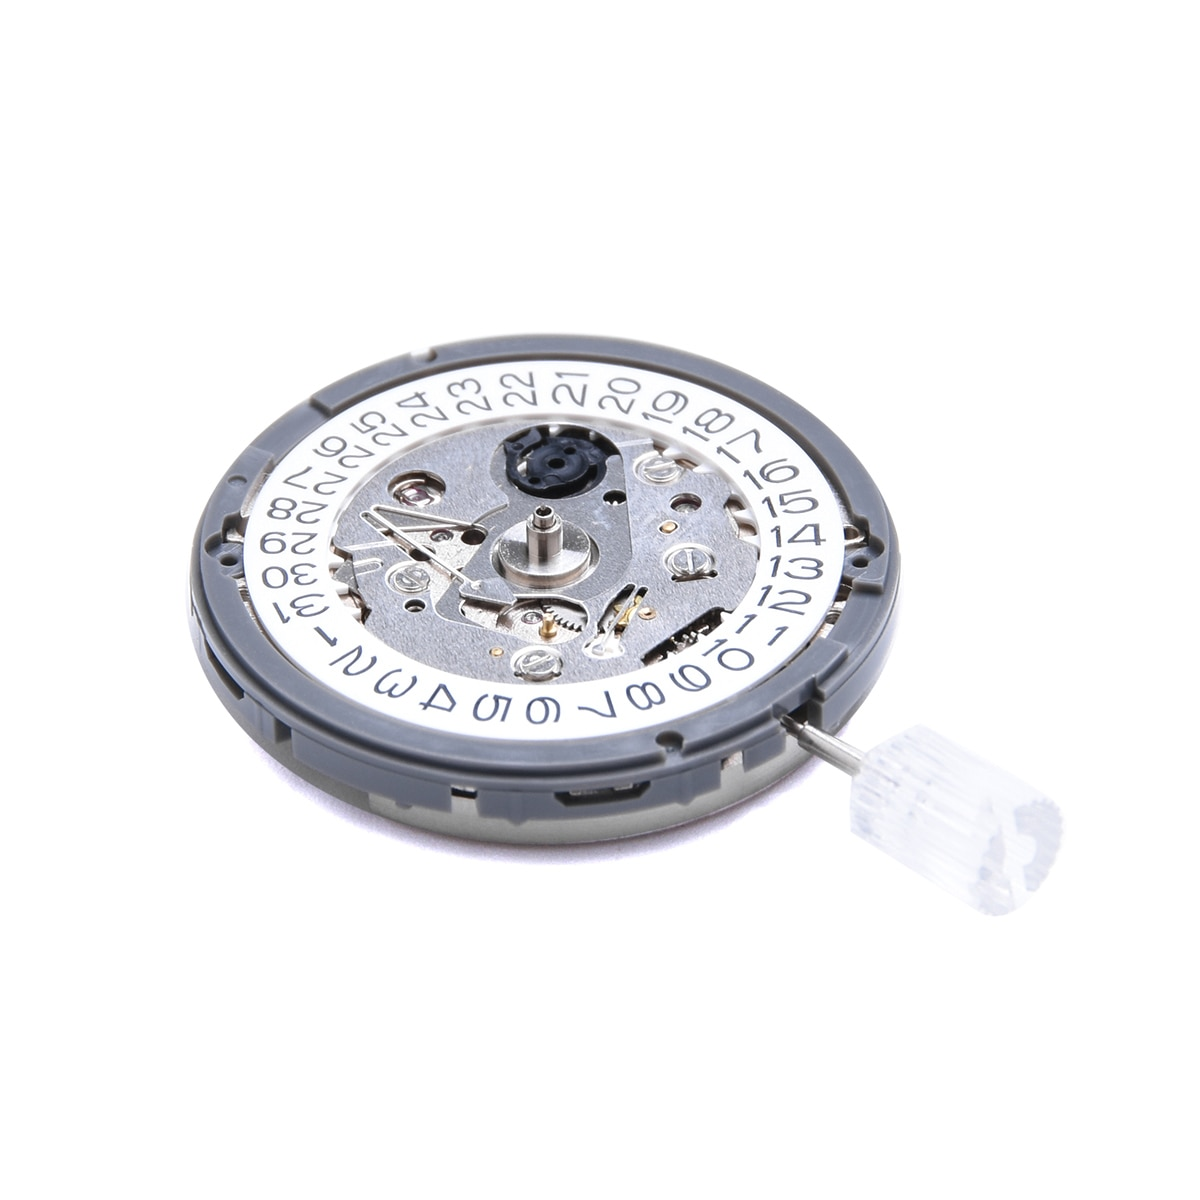 NH35 Movement Day Date Set High Accuracy Automatic Mechanical Watch Wrist enlarge